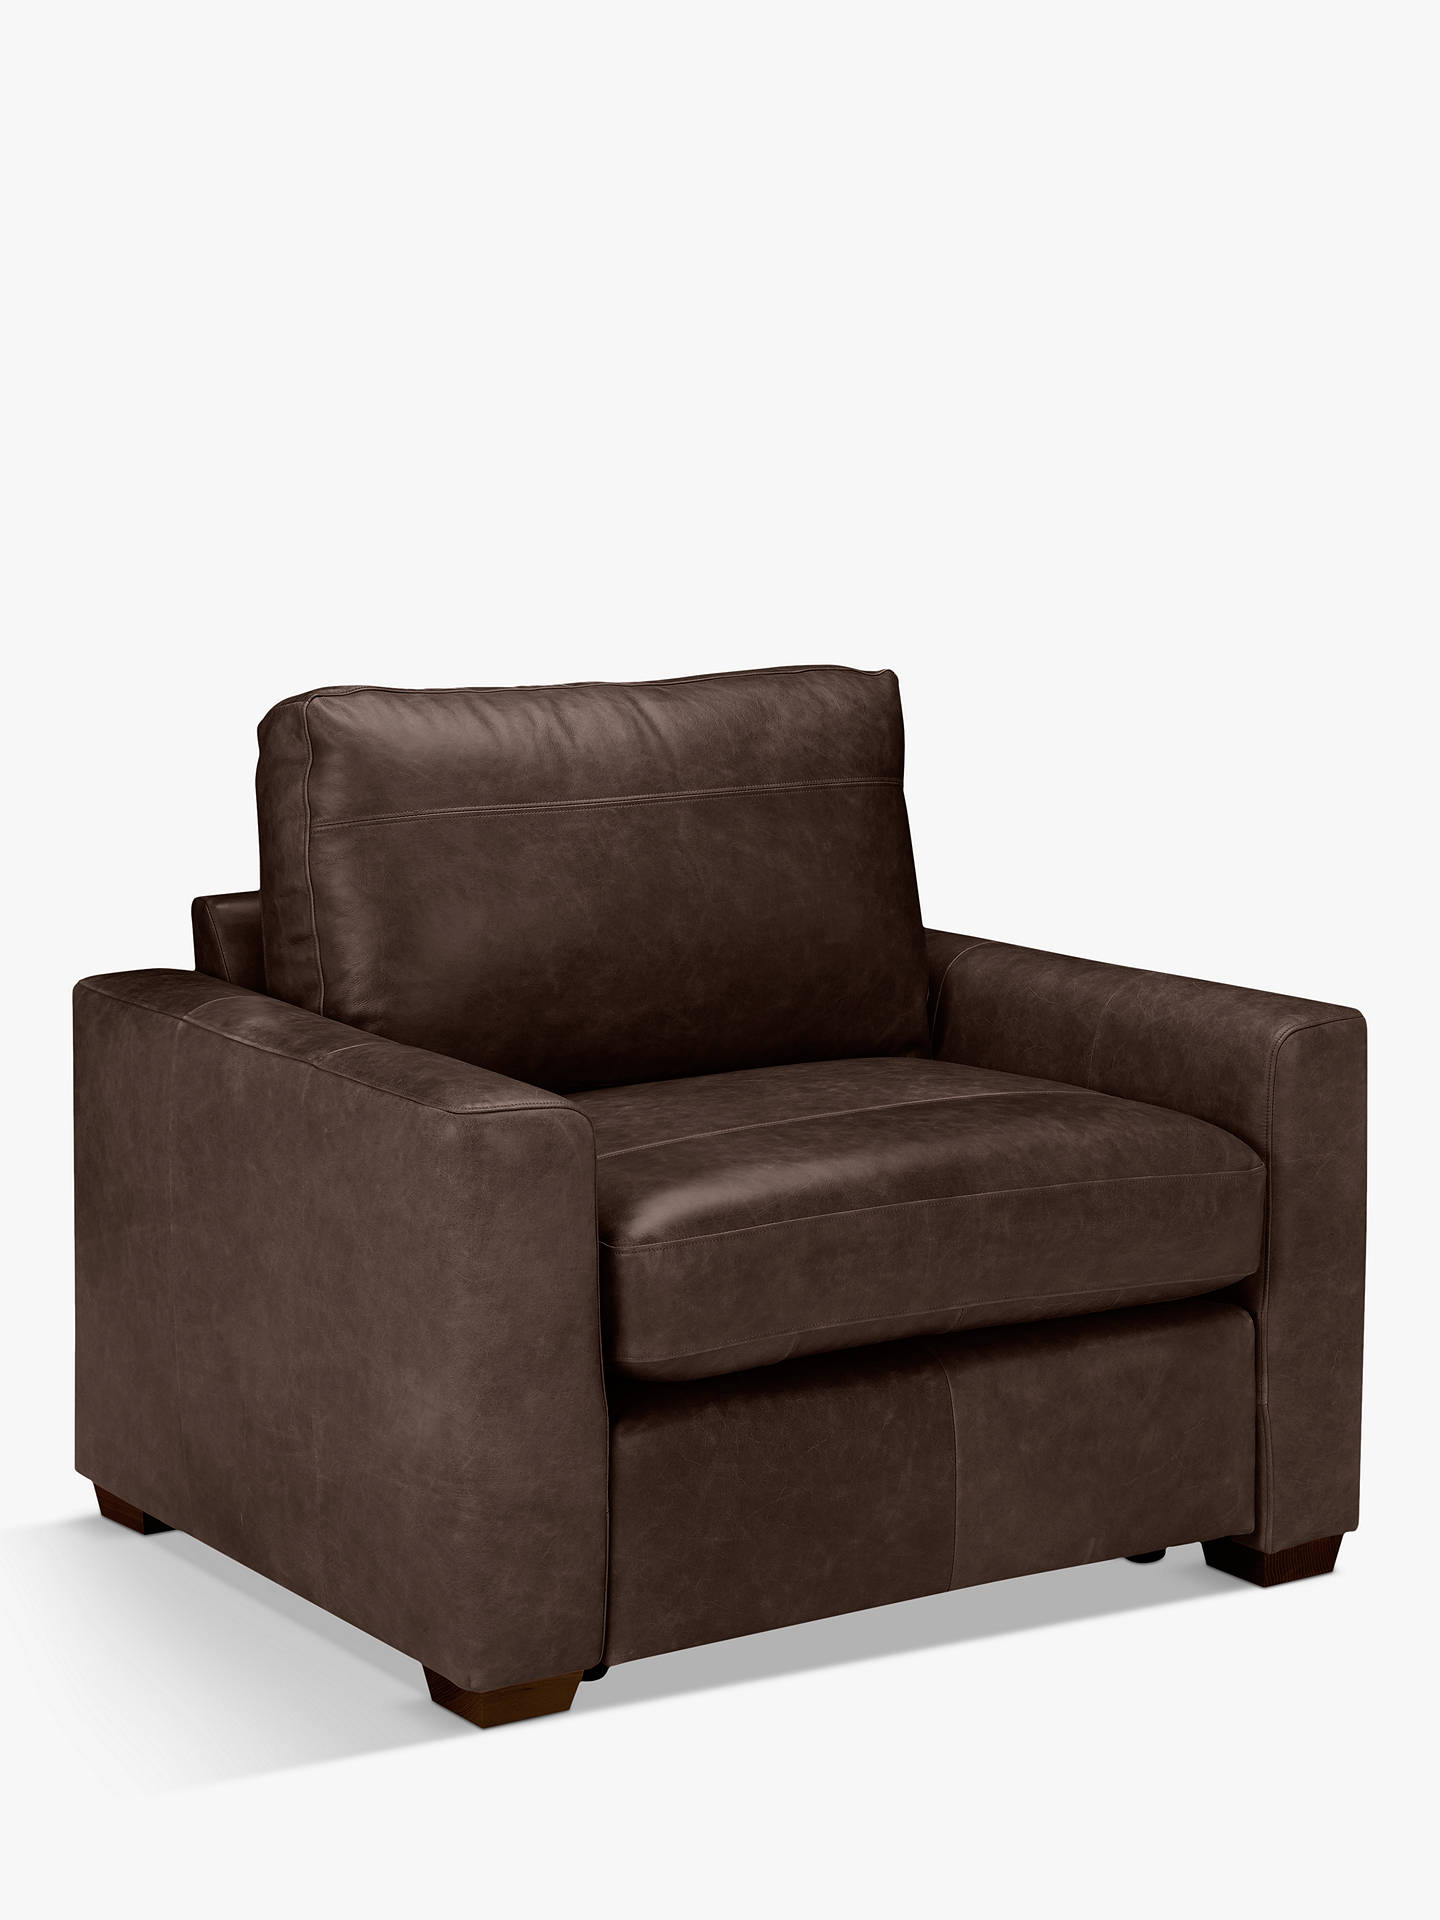 Buy House by John Lewis Oliver Leather Armchair, Dark Leg, Contempo Dark Chocolate Online at johnlewis.com